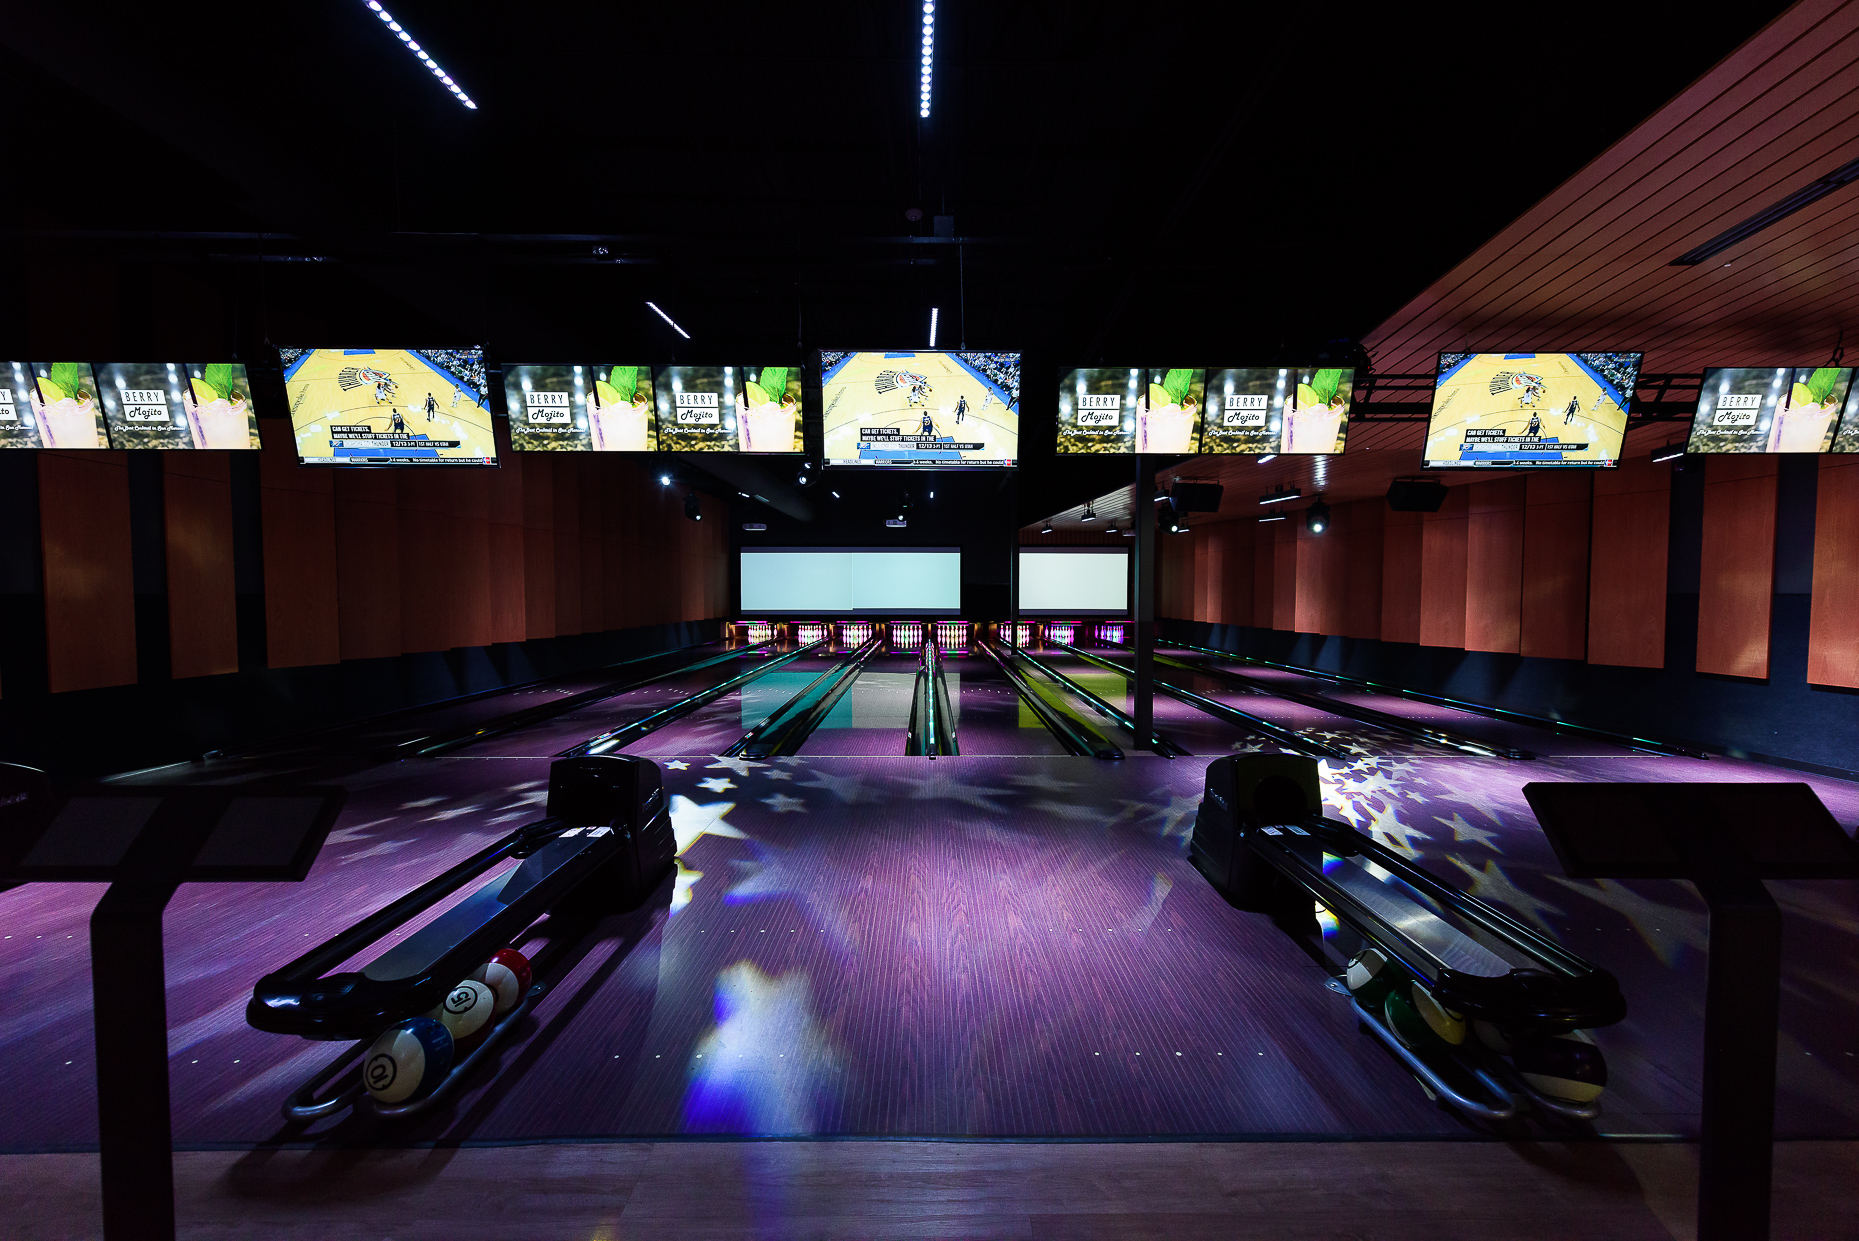 Austin-Commercial-Photographer-Architectural-Interior-Bowling-Alley